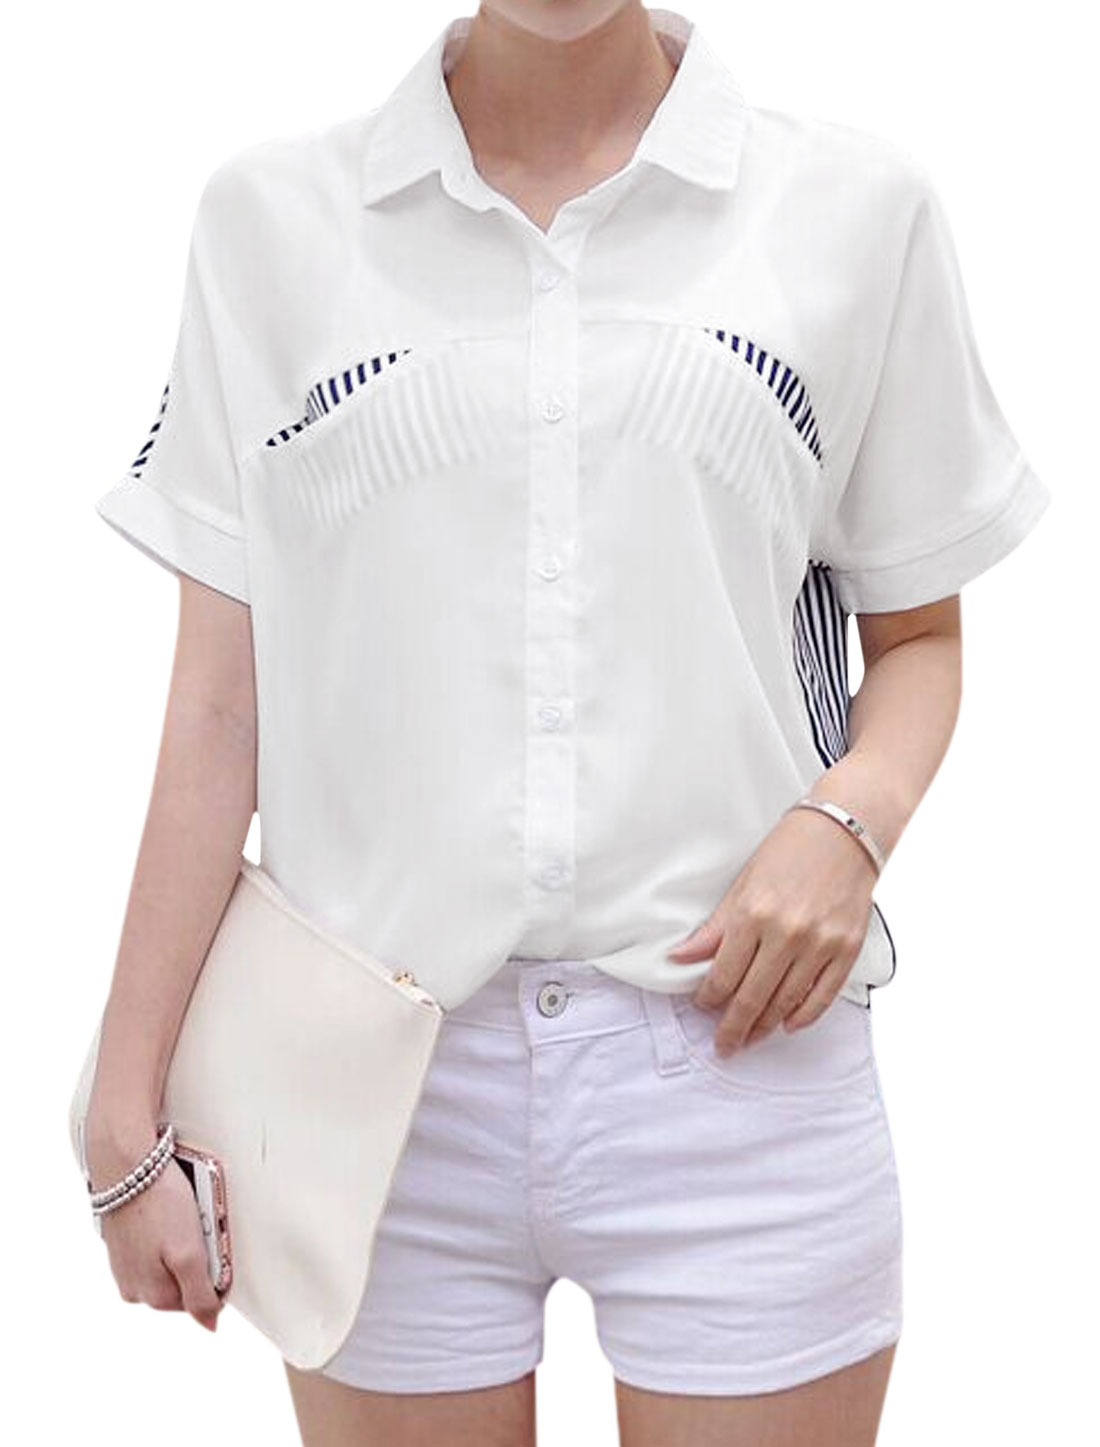 Women Point Collar Short Batwing Sleeves Stripes Chiffon Shirt White M